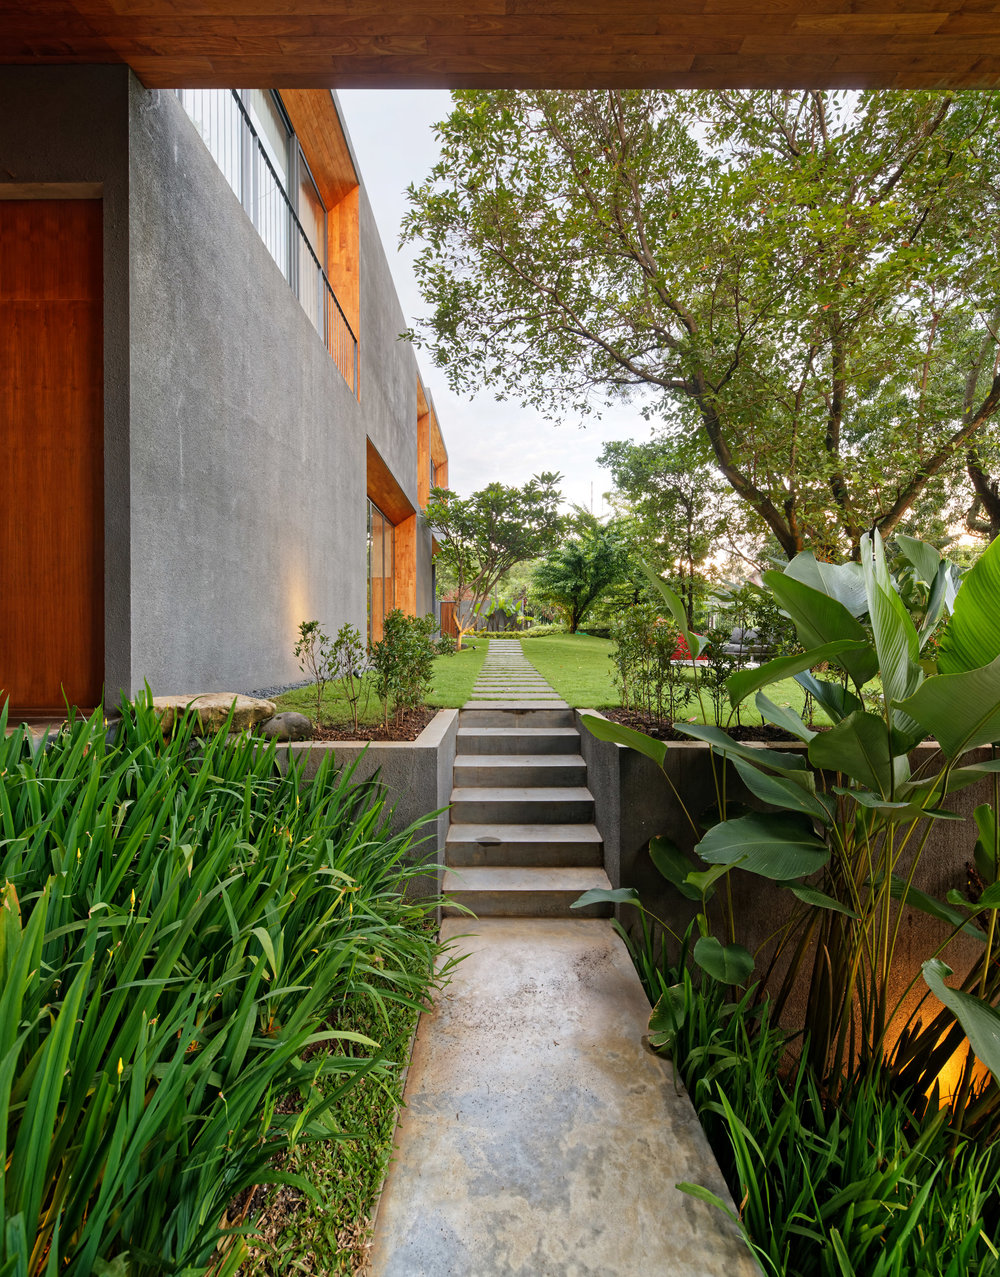 house-inside-outside-tamara-wibowo-architecture-residential-indonesia_dezeen_2364_col_7.jpg